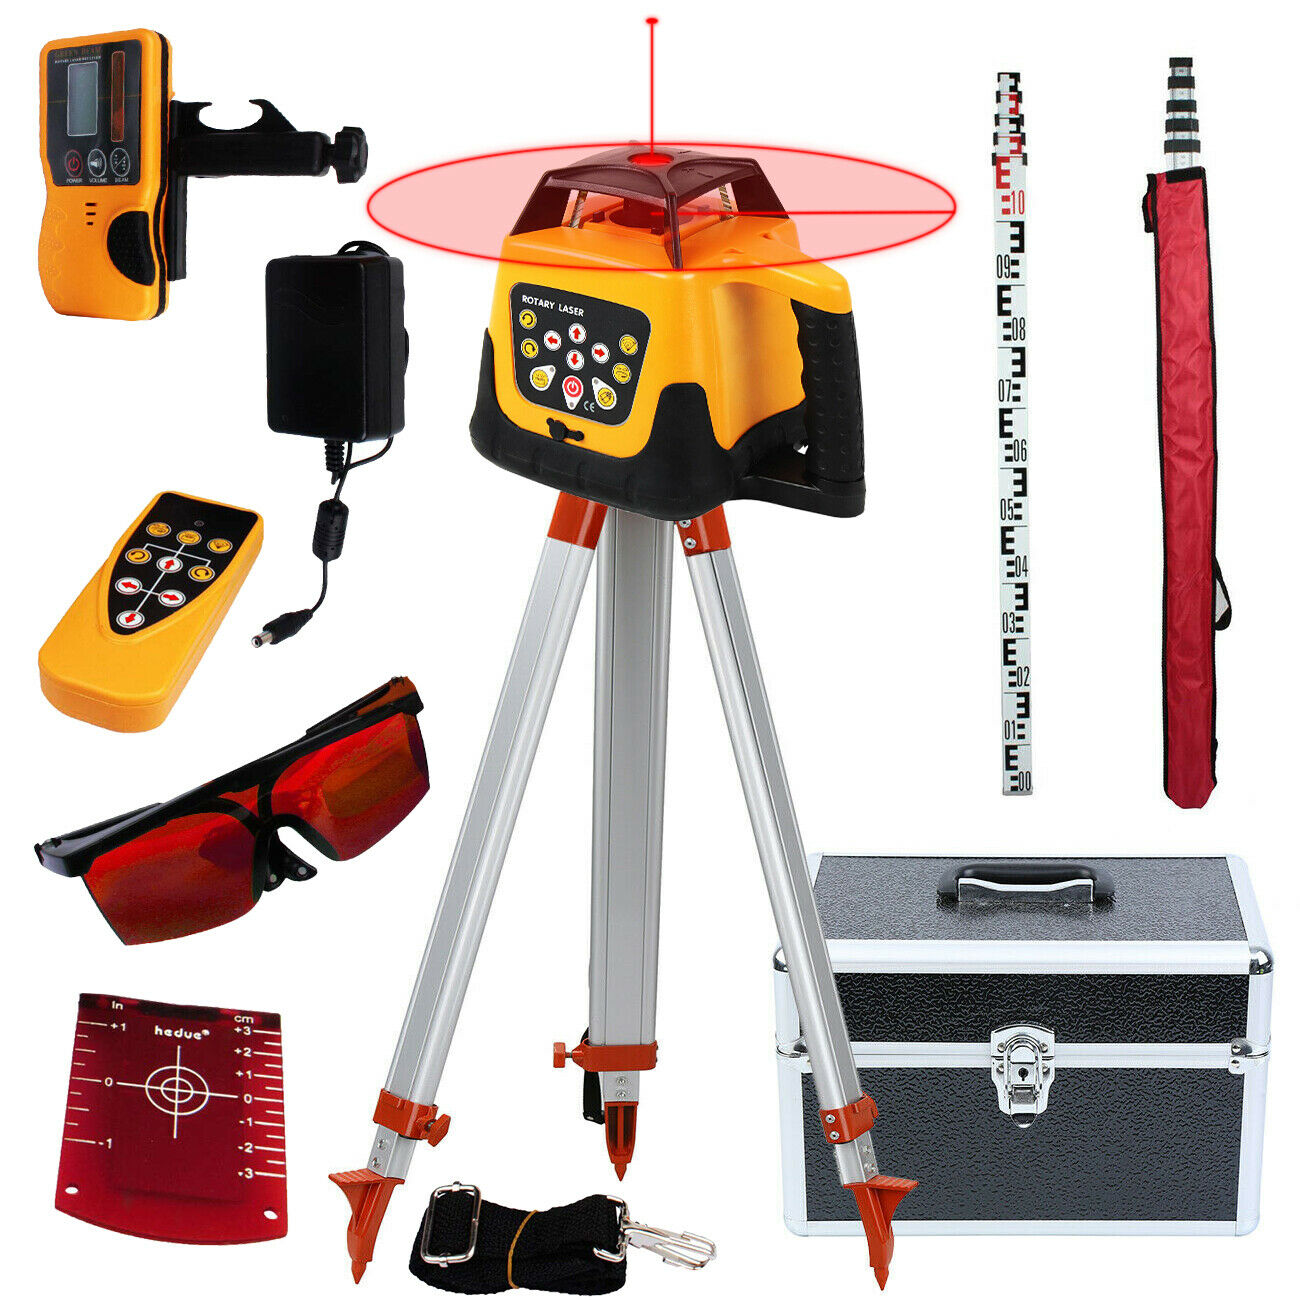 brand new 1 65m aluminum tripod 5m 5 section dumpy laser level staff for rotary laser level Honhill Self-leveling Rotary Laser Level 360 degree 500m +1.65M Laser Level Tripod+5M Measuring stick Red Beam